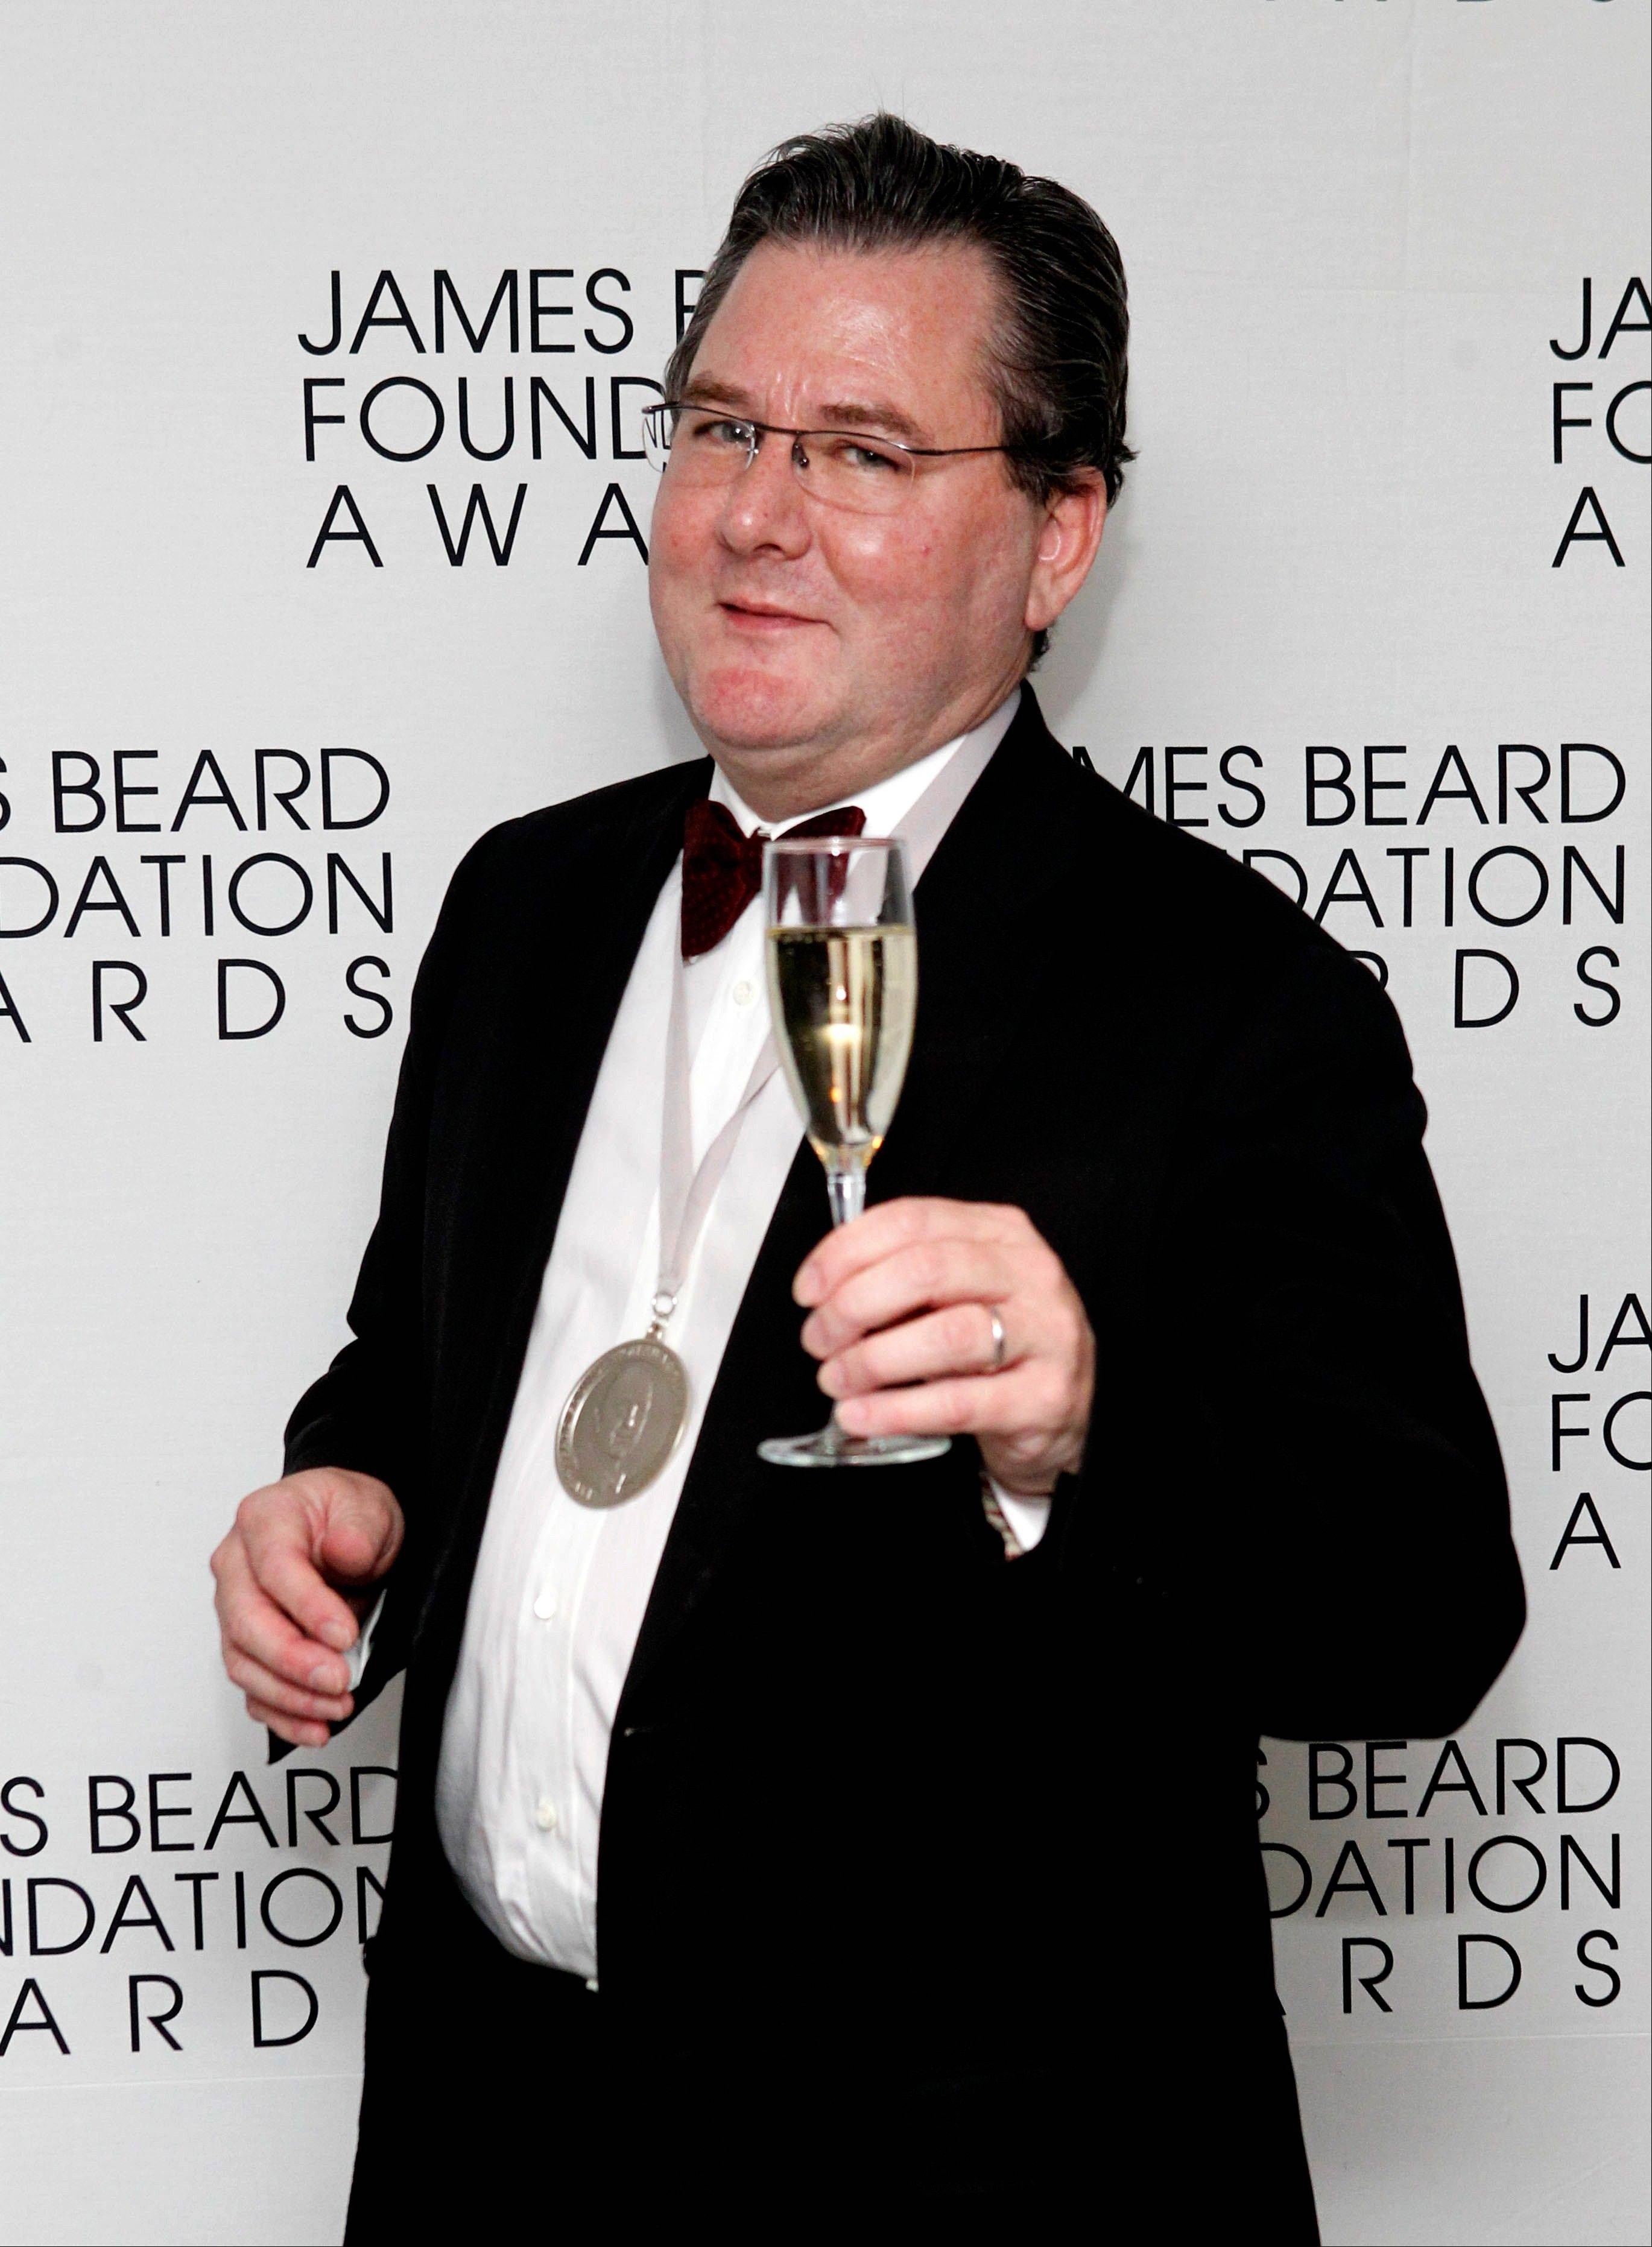 In this May 7, 2012 file photo, chef Charlie Trotter poses with a glass of champagne and his medal for Humanitarian of the Year during the James Beard Foundation Awards in New York. The award-winning chef died in November, a year after closing his eponymous Chicago restaurant that is credited with elevating the city�s cuisine and providing a training ground for some of the nation�s other best chefs.